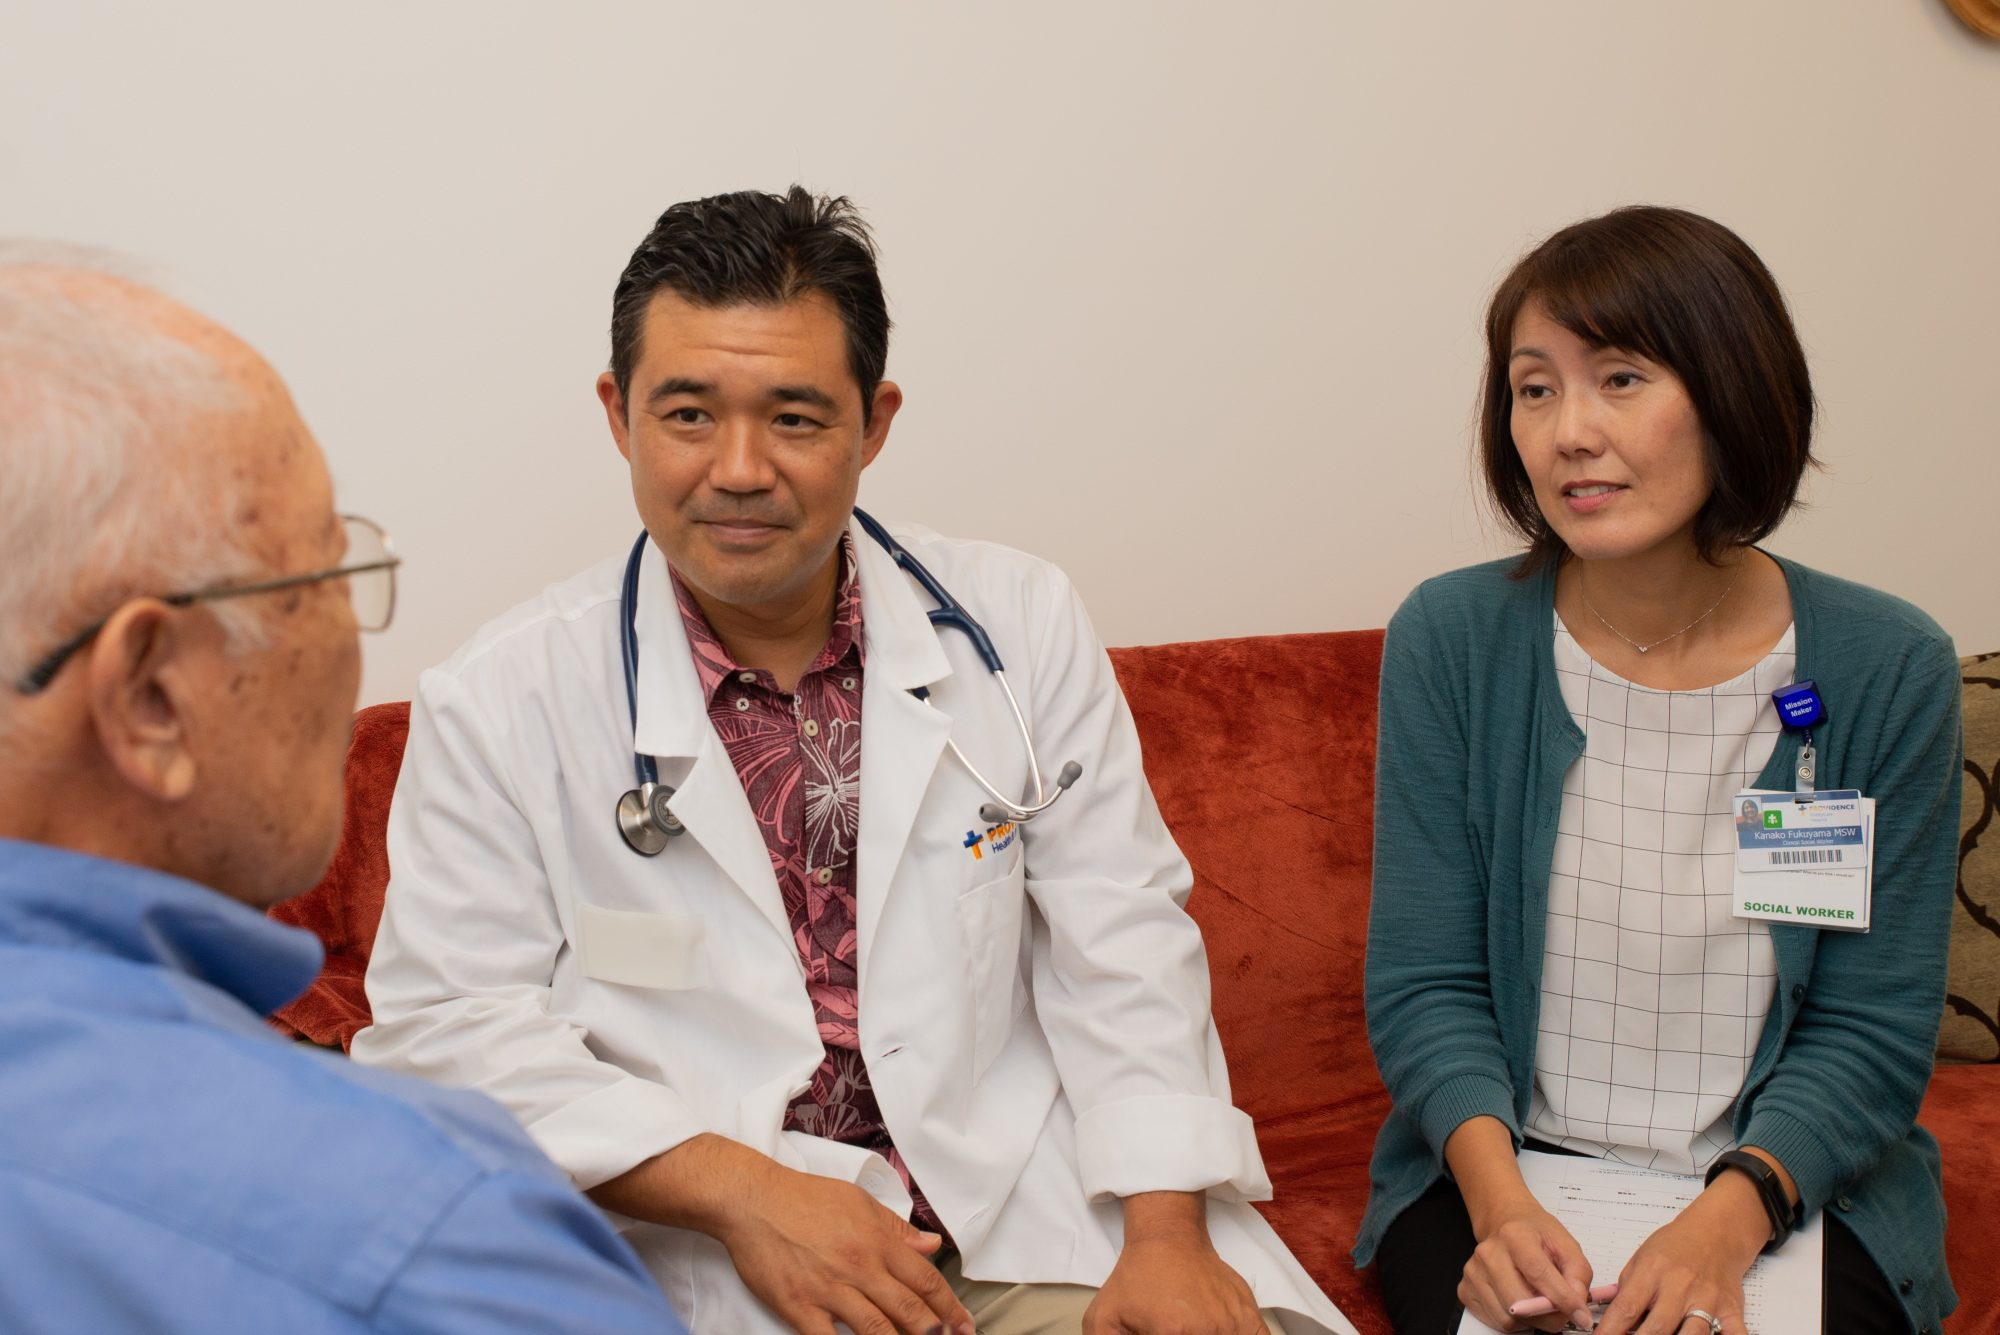 Dr. Yanami and Kanako from Iyashi Care Team